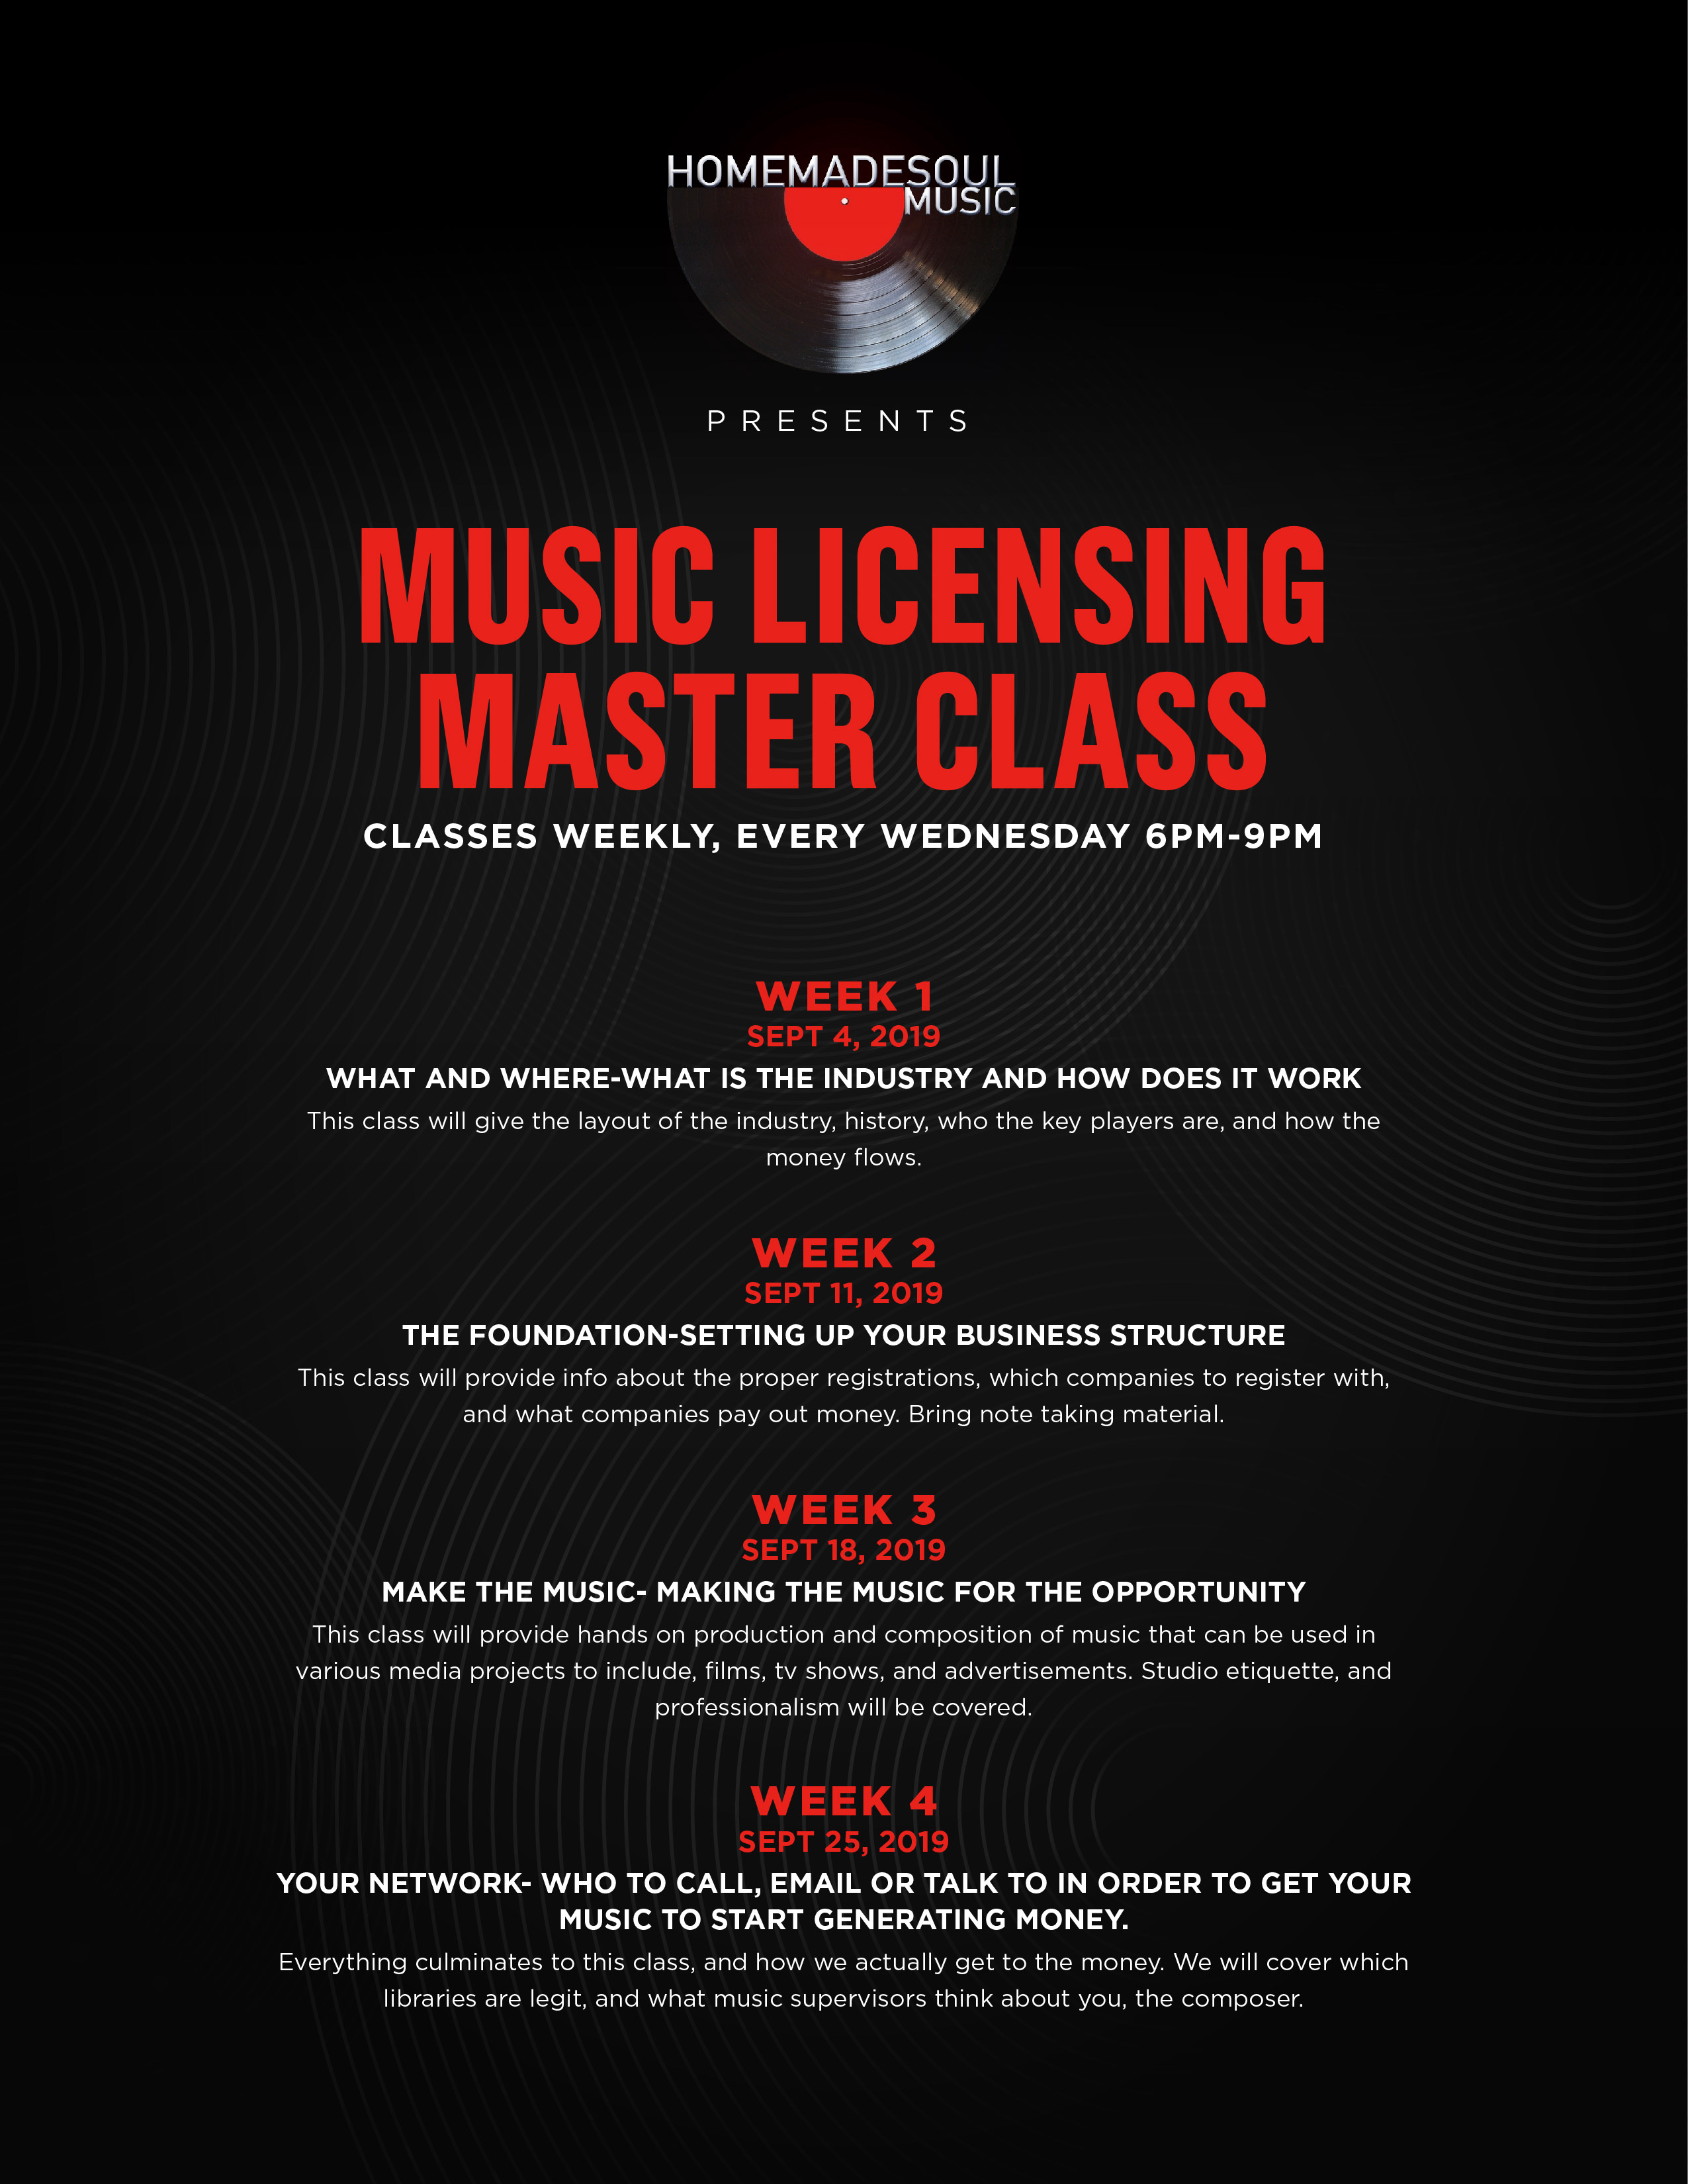 Homemadesoul Music's Music Licensing Master Class